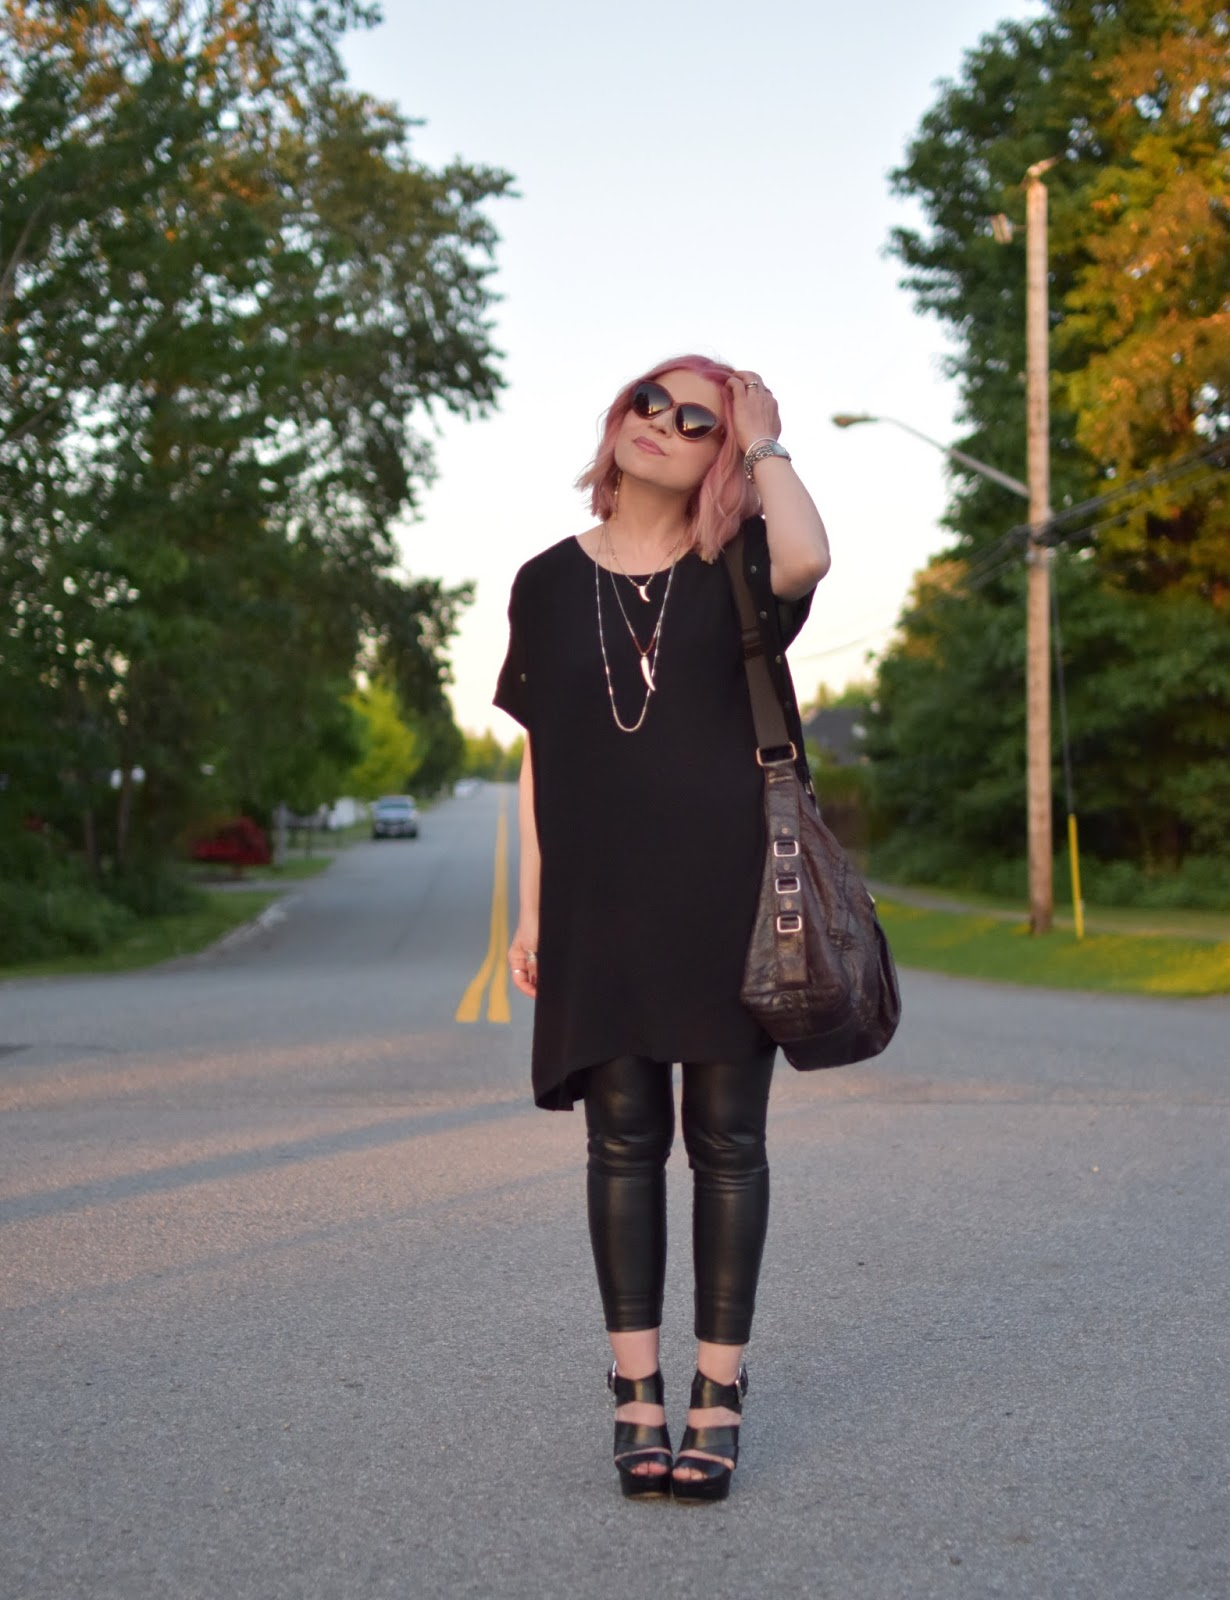 Monika Faulkner outfit inspiration - styling a tunic dress with vegan leather leggings and platform sandals